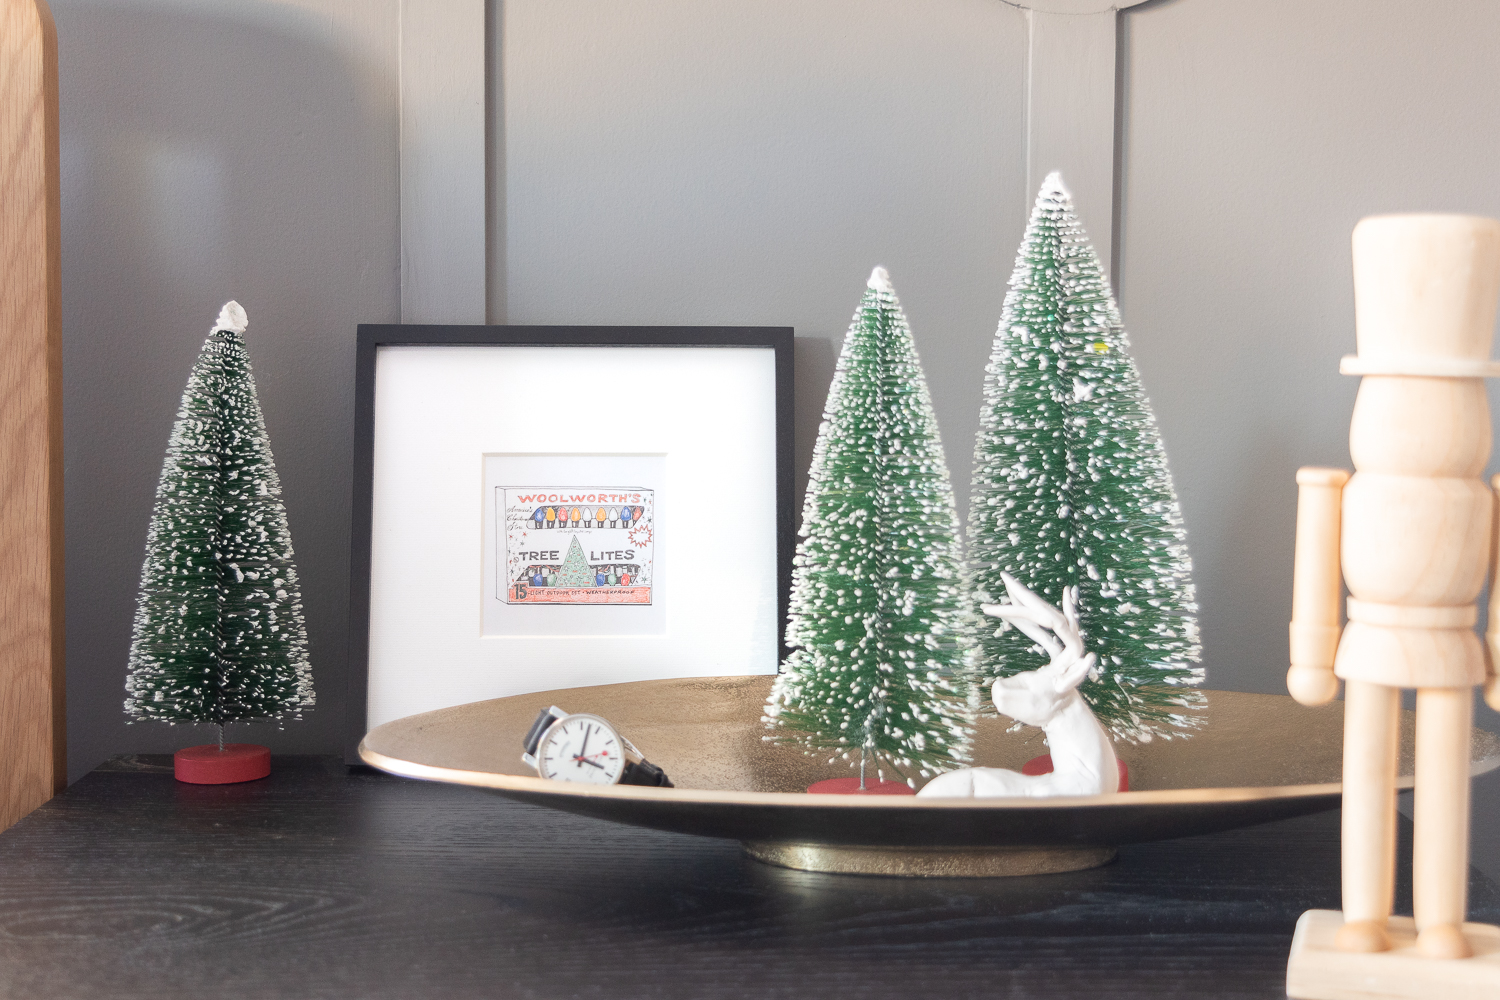 Bedside Holiday Decor for Christmas and Winter-0191.jpg